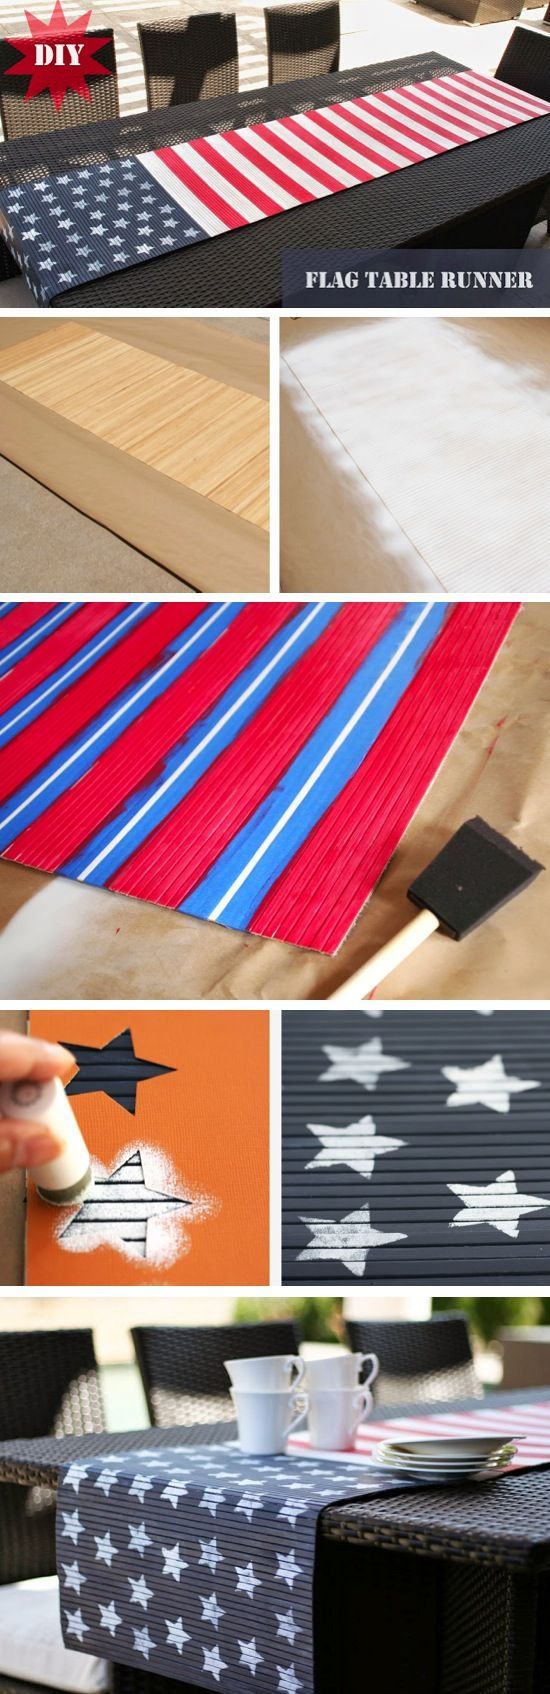 Bamboo table runner - Diy American Flag Table Runner Made With A Bamboo Table Runner And Little Bit Of